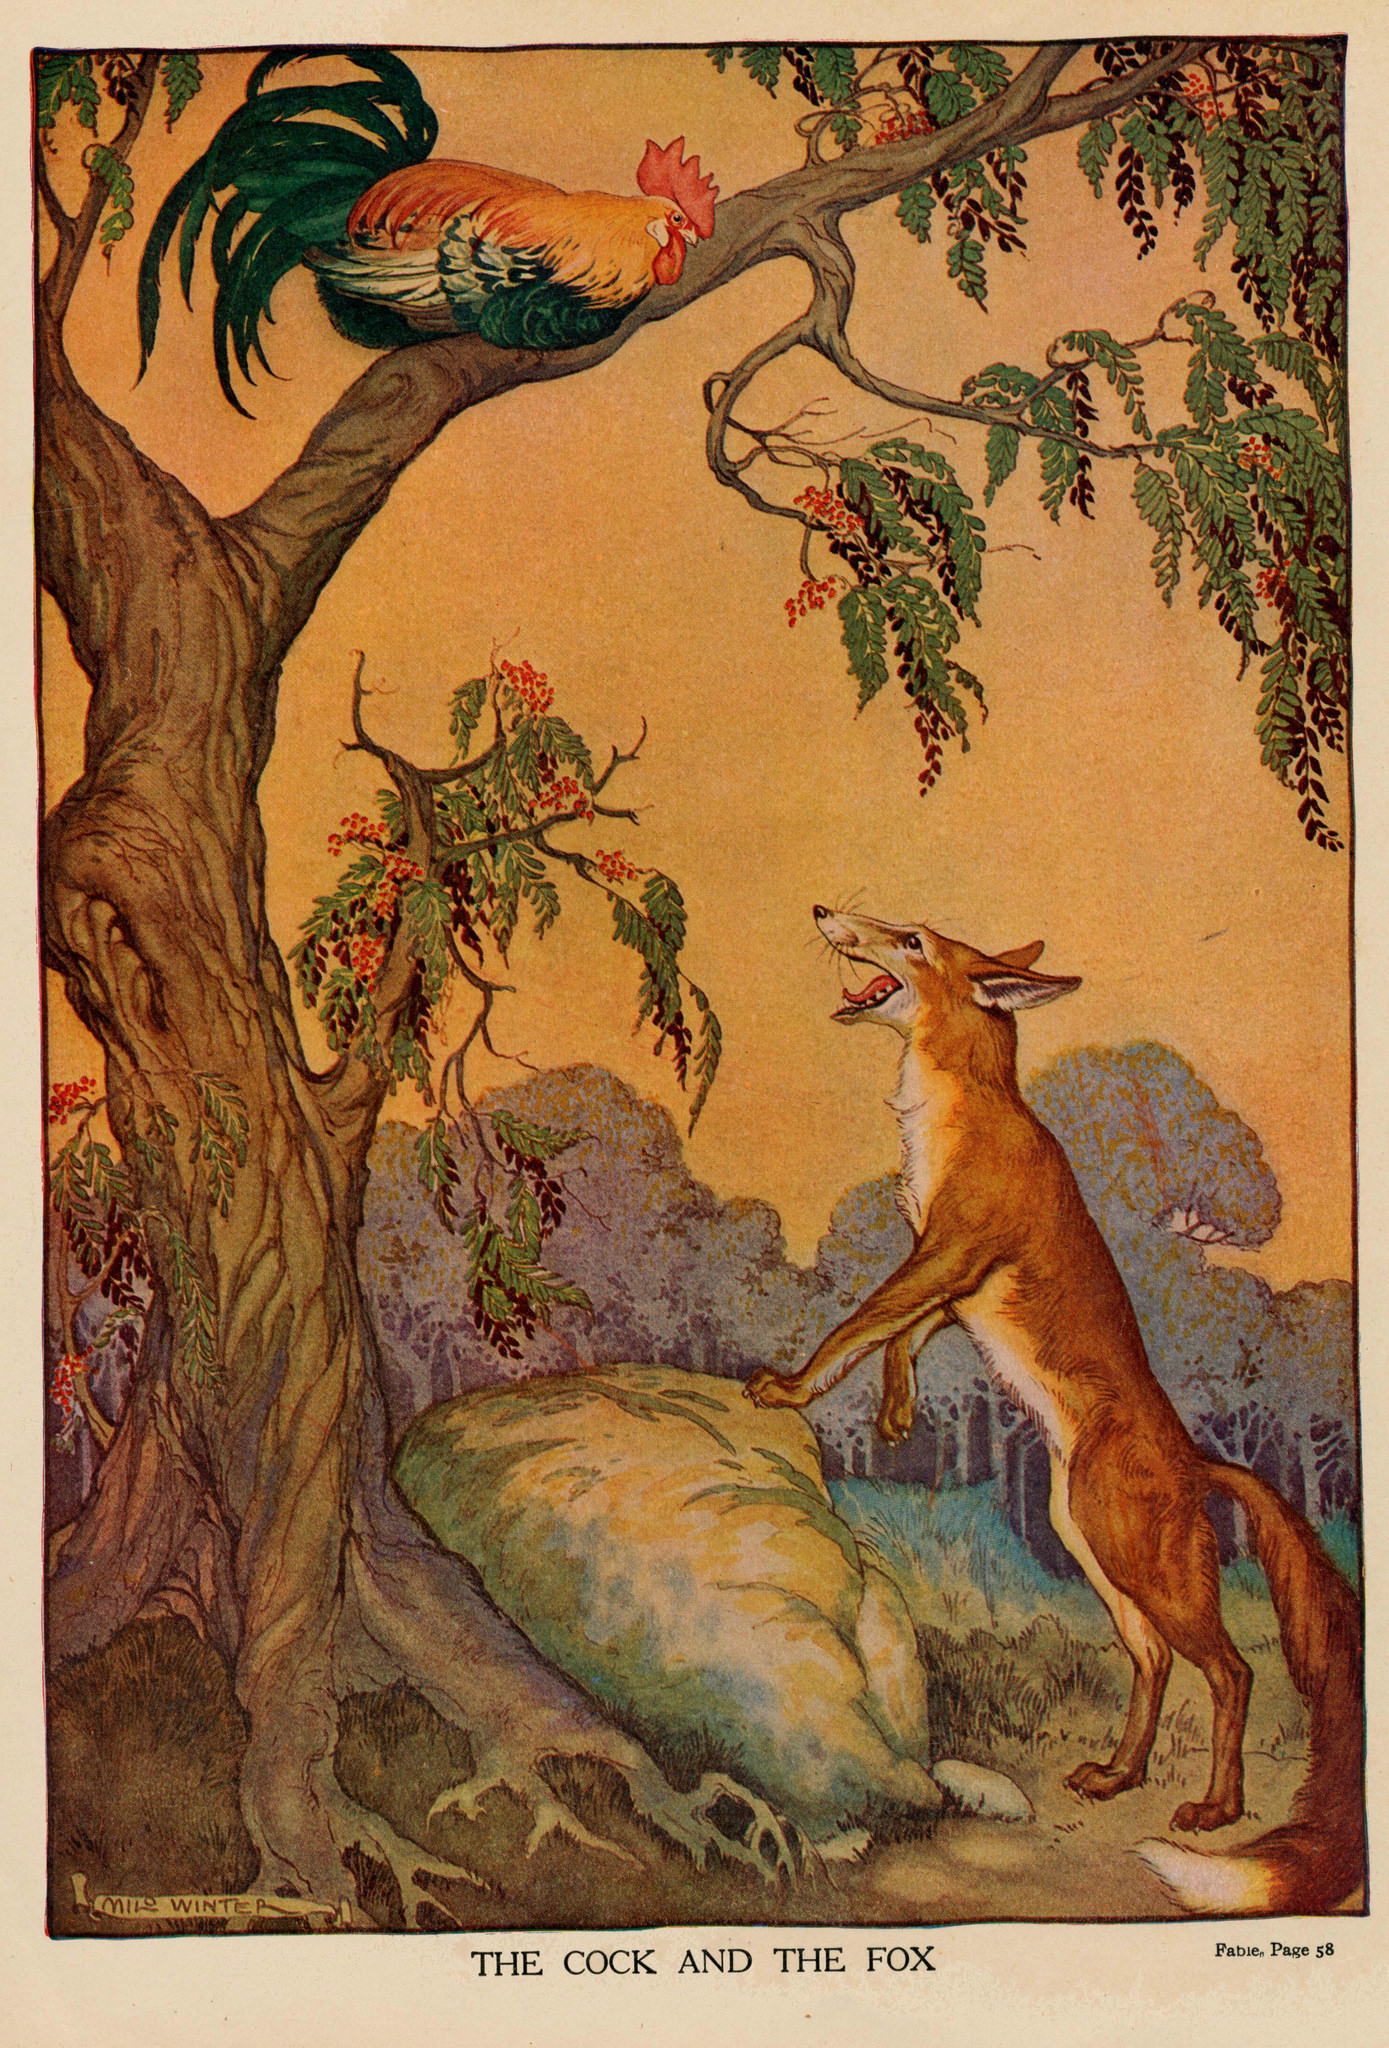 The Cock And The Fox By Milo Winter, 1919.